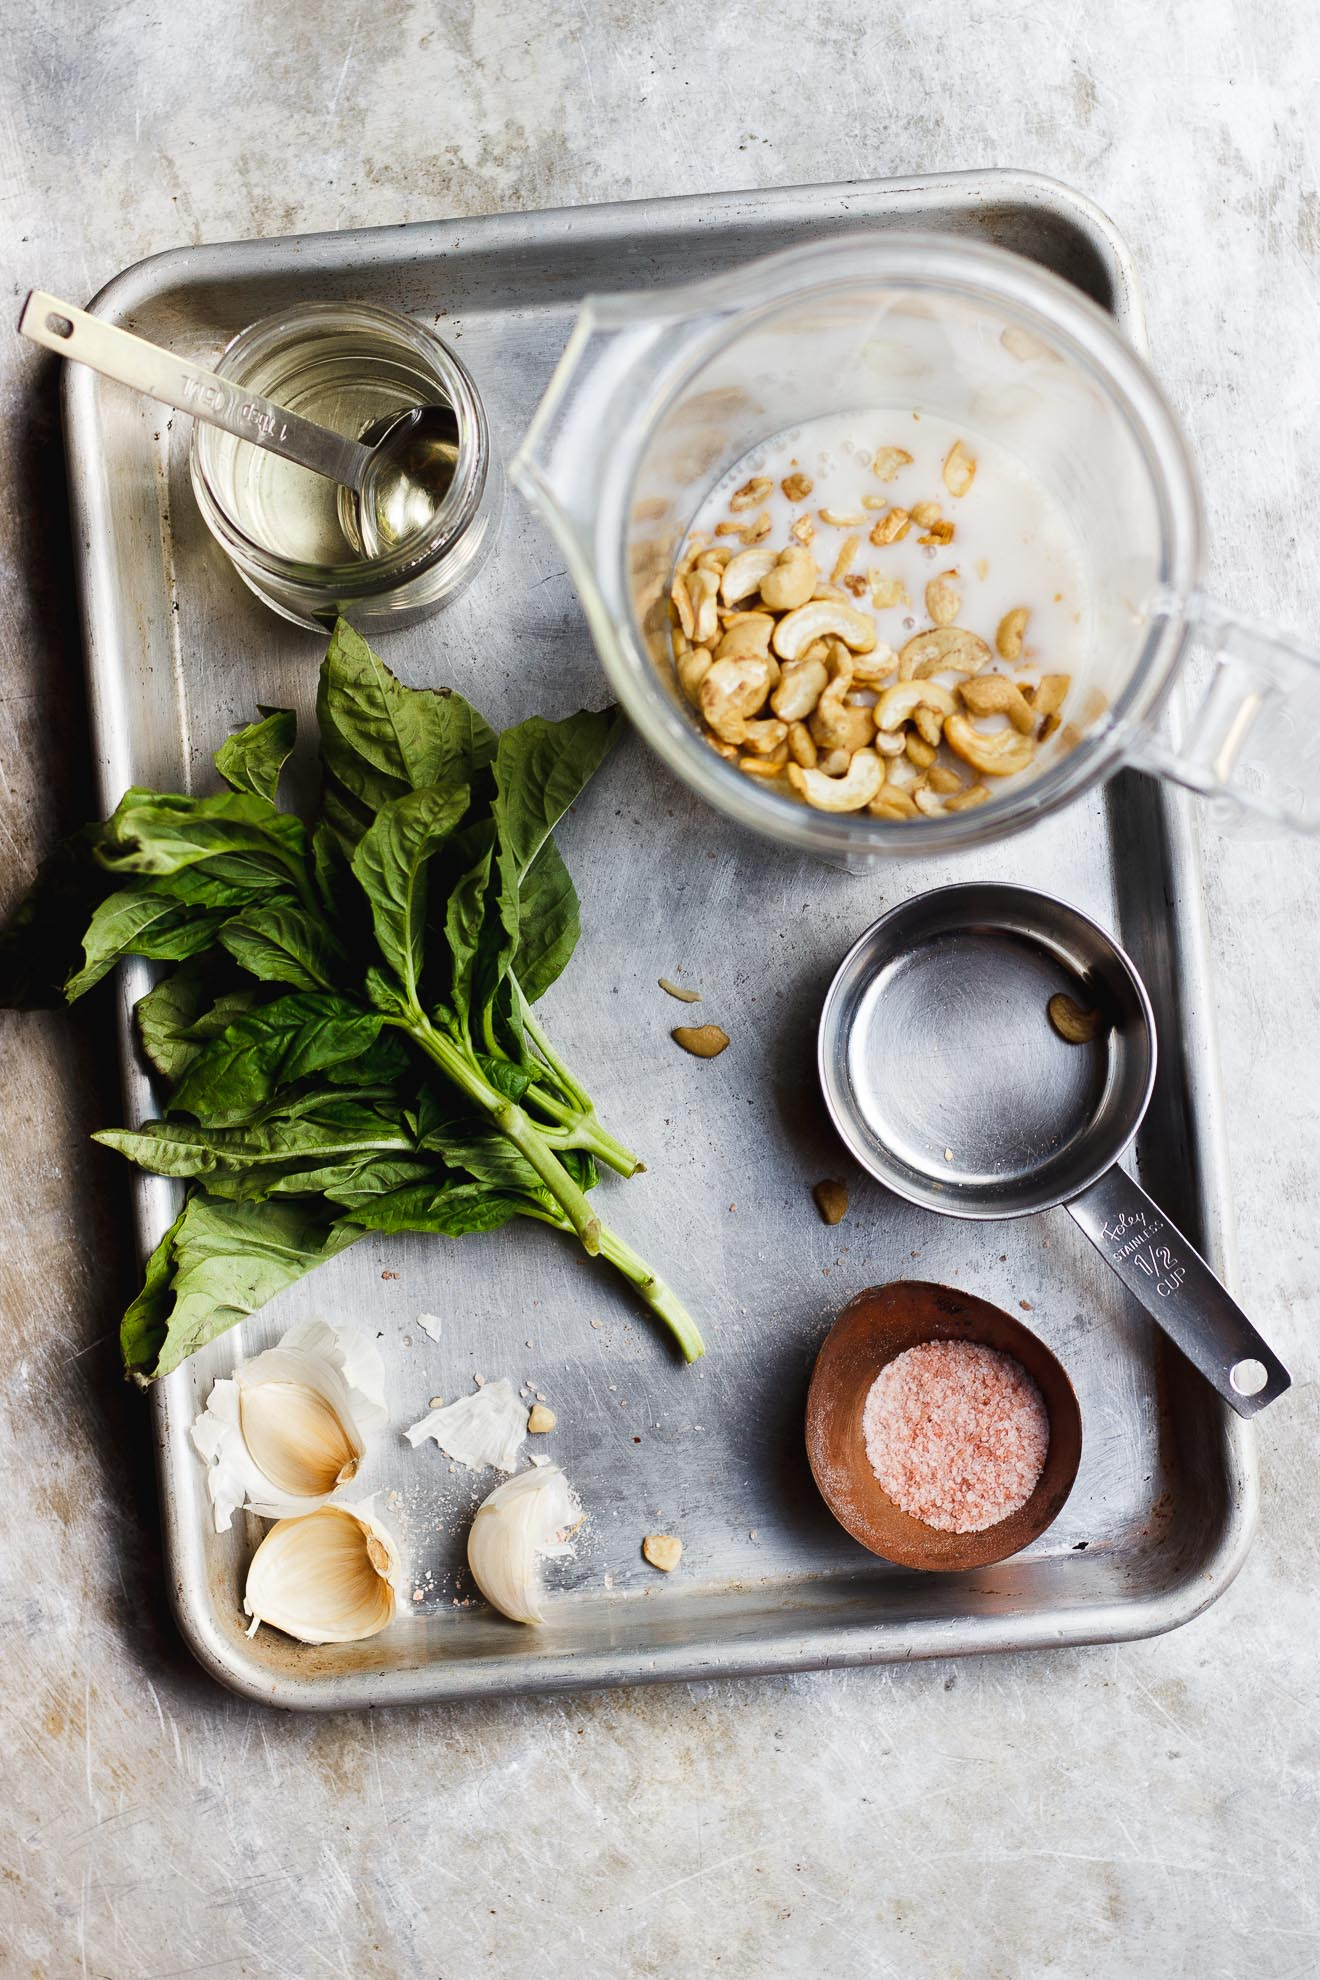 ingredients for basil sauce